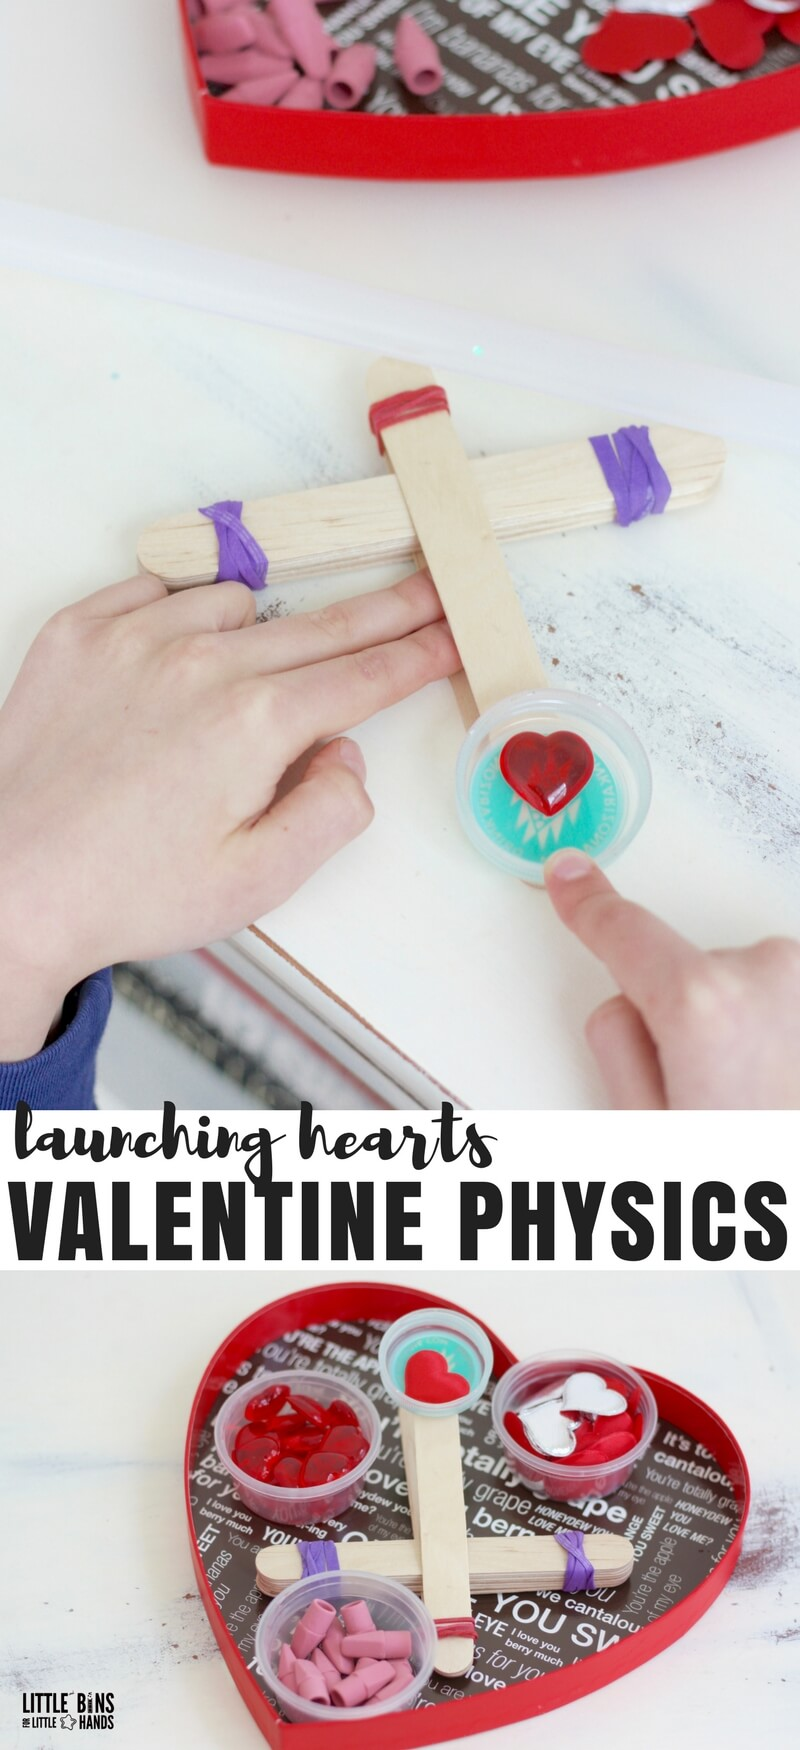 Valentines Day Physics Activities: Build a catapult simple machine with lever and test a variety of items for best launching capability!